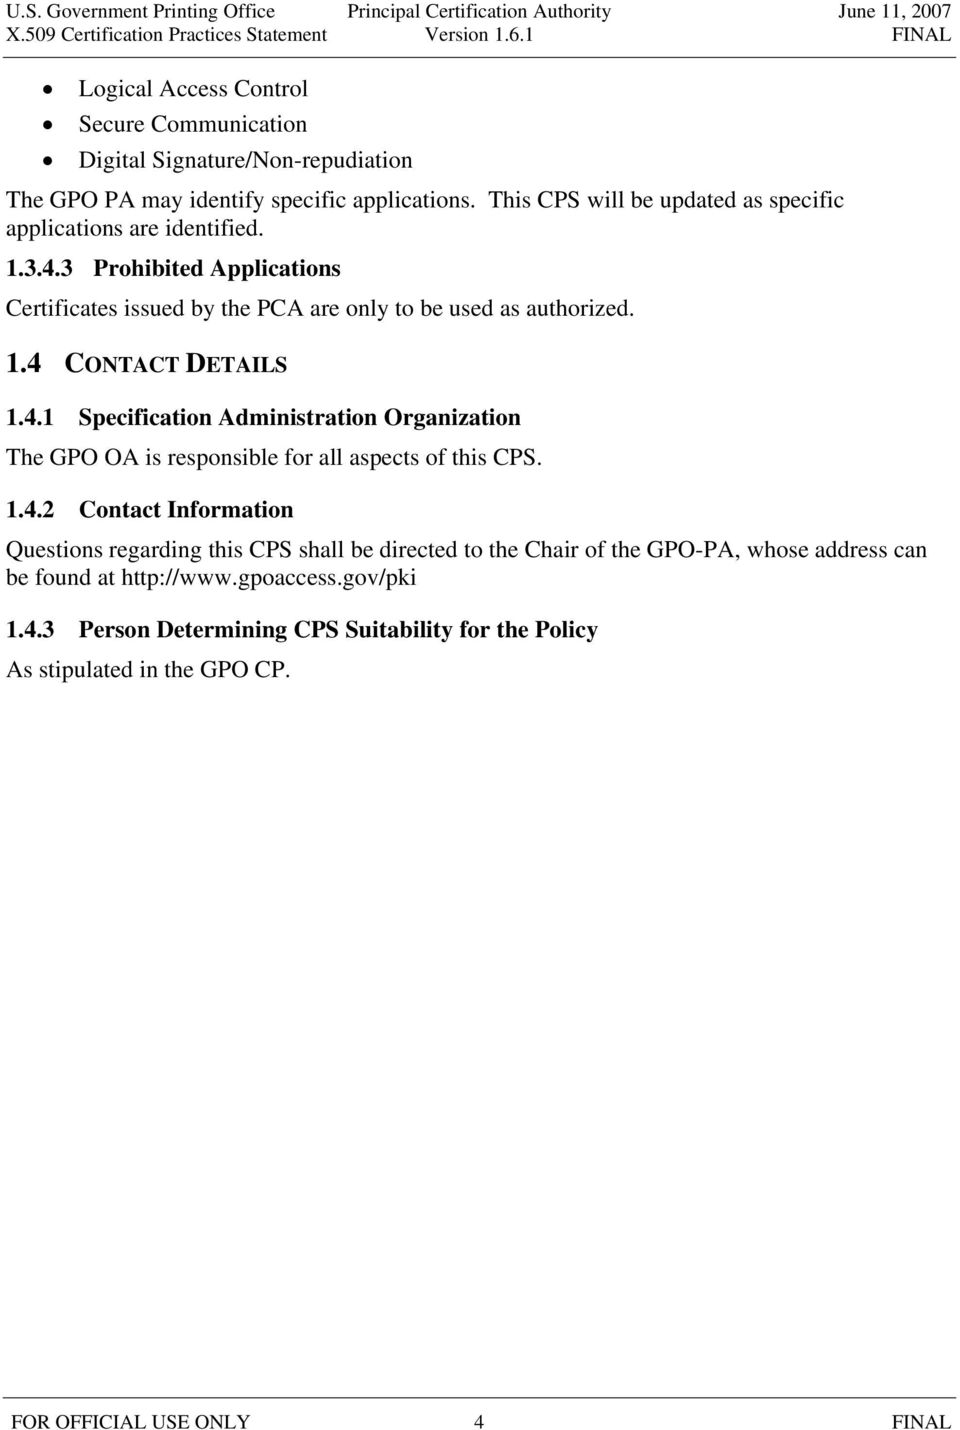 4.1 Specification Administration Organization The GPO OA is responsible for all aspects of this CPS. 1.4.2 Contact Information Questions regarding this CPS shall be directed to the Chair of the GPO-PA, whose address can be found at http://www.